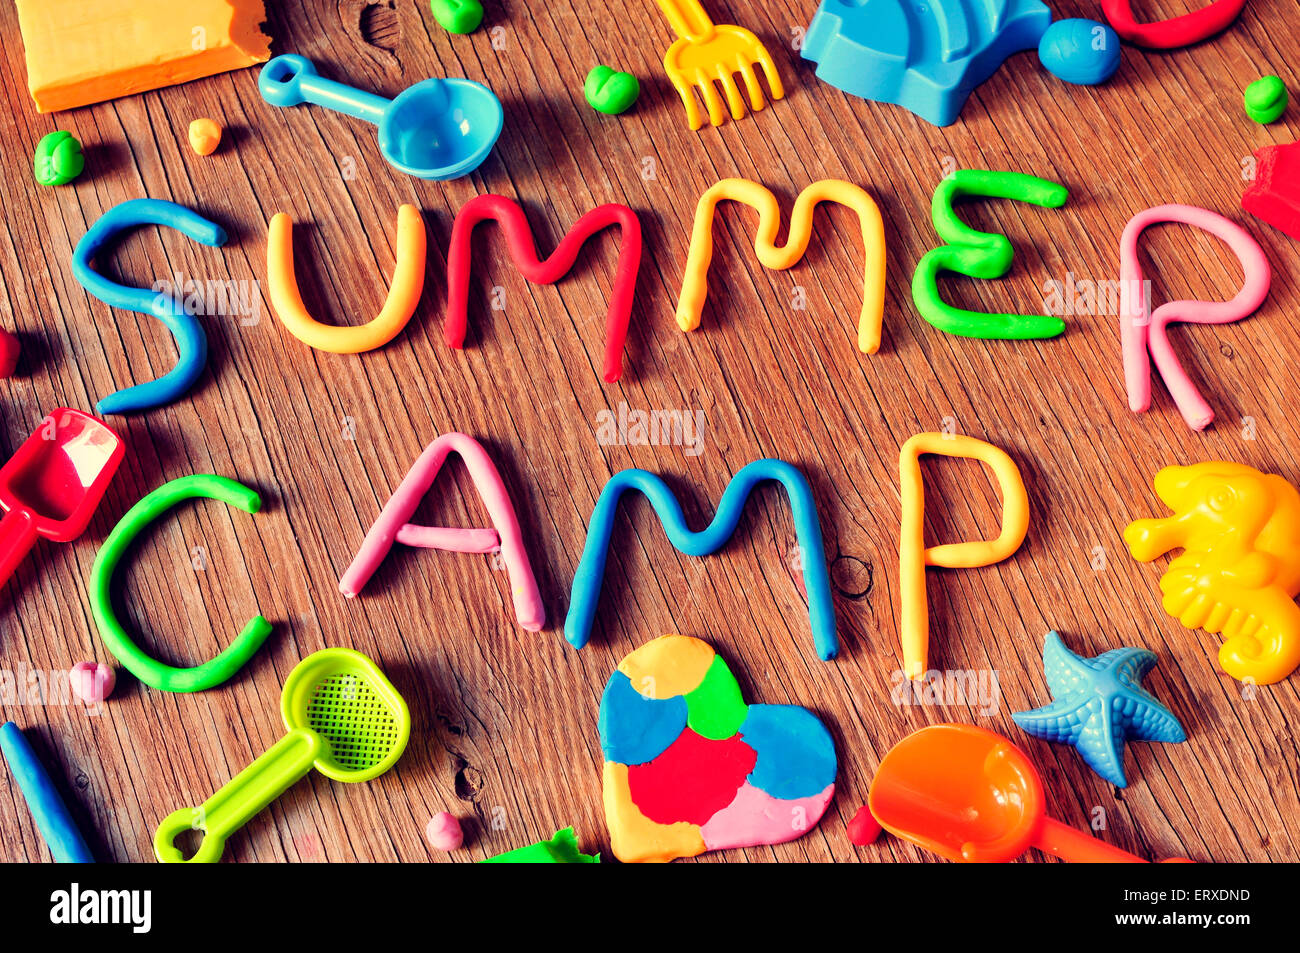 the text summer camp made from modelling clay of different colors and some beach toys such as toy shovels and sand - Stock Image